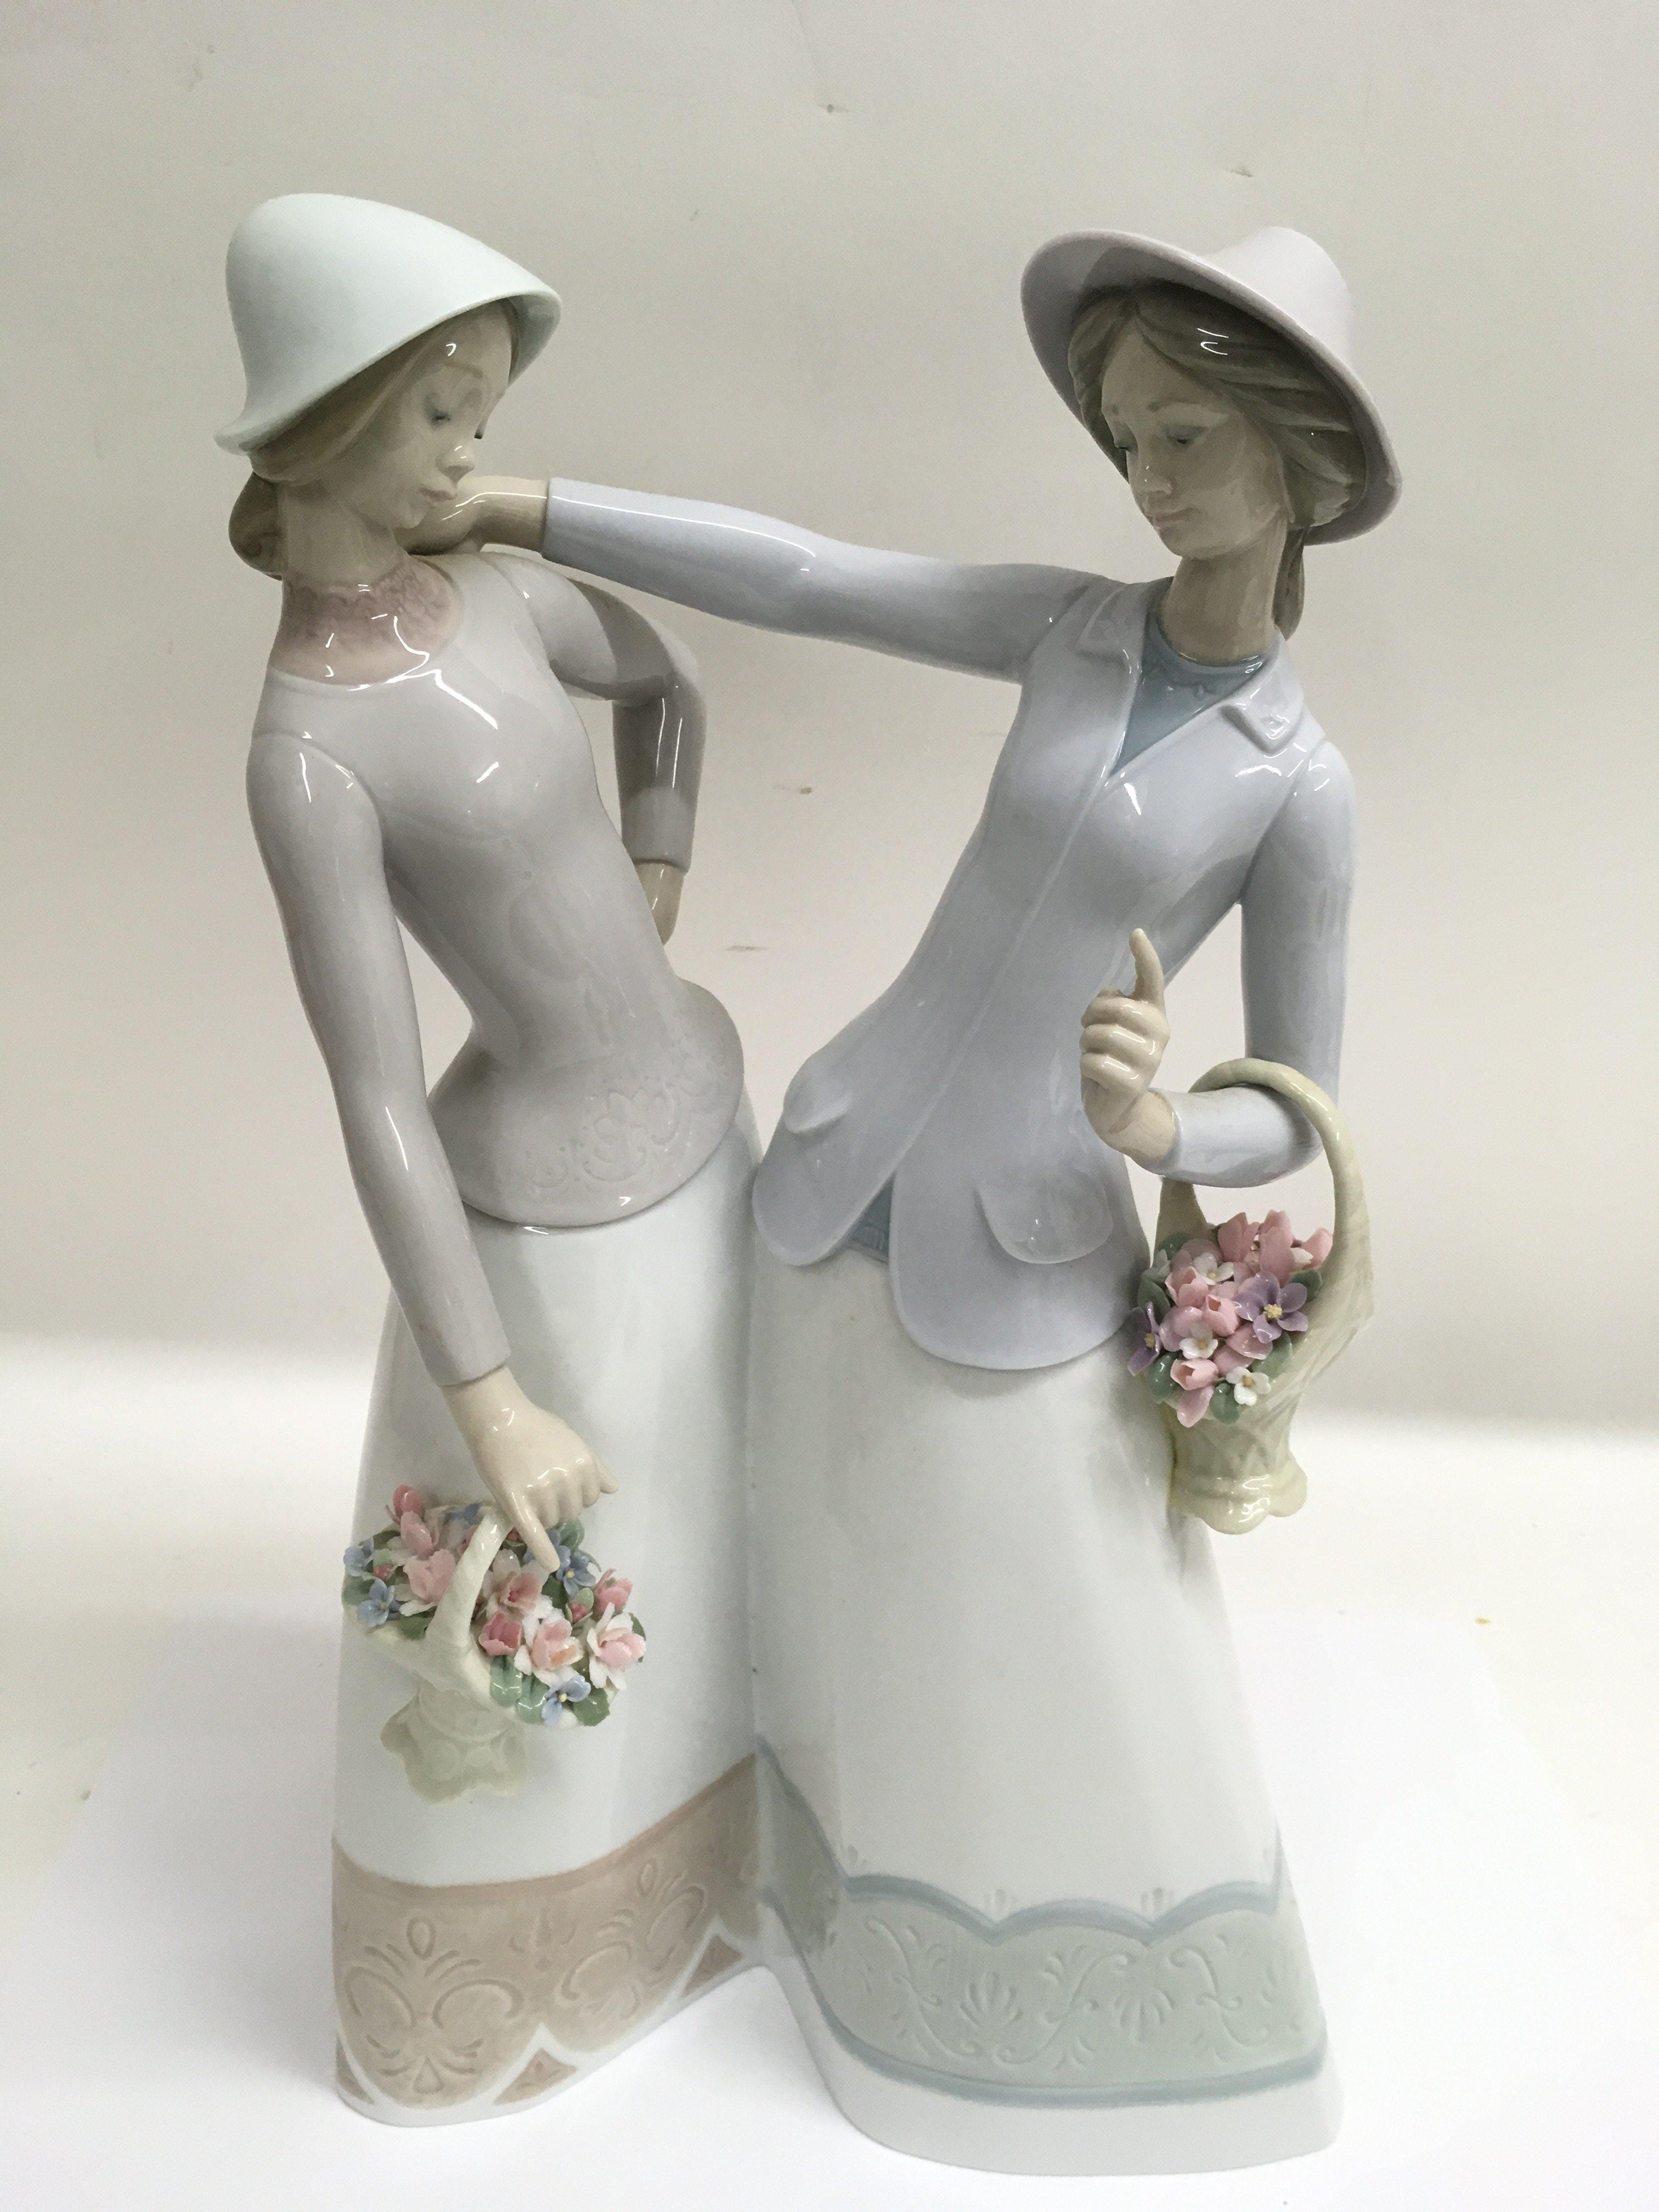 Lot 741 - A large Lladro figure group 'The Encounter', boxed